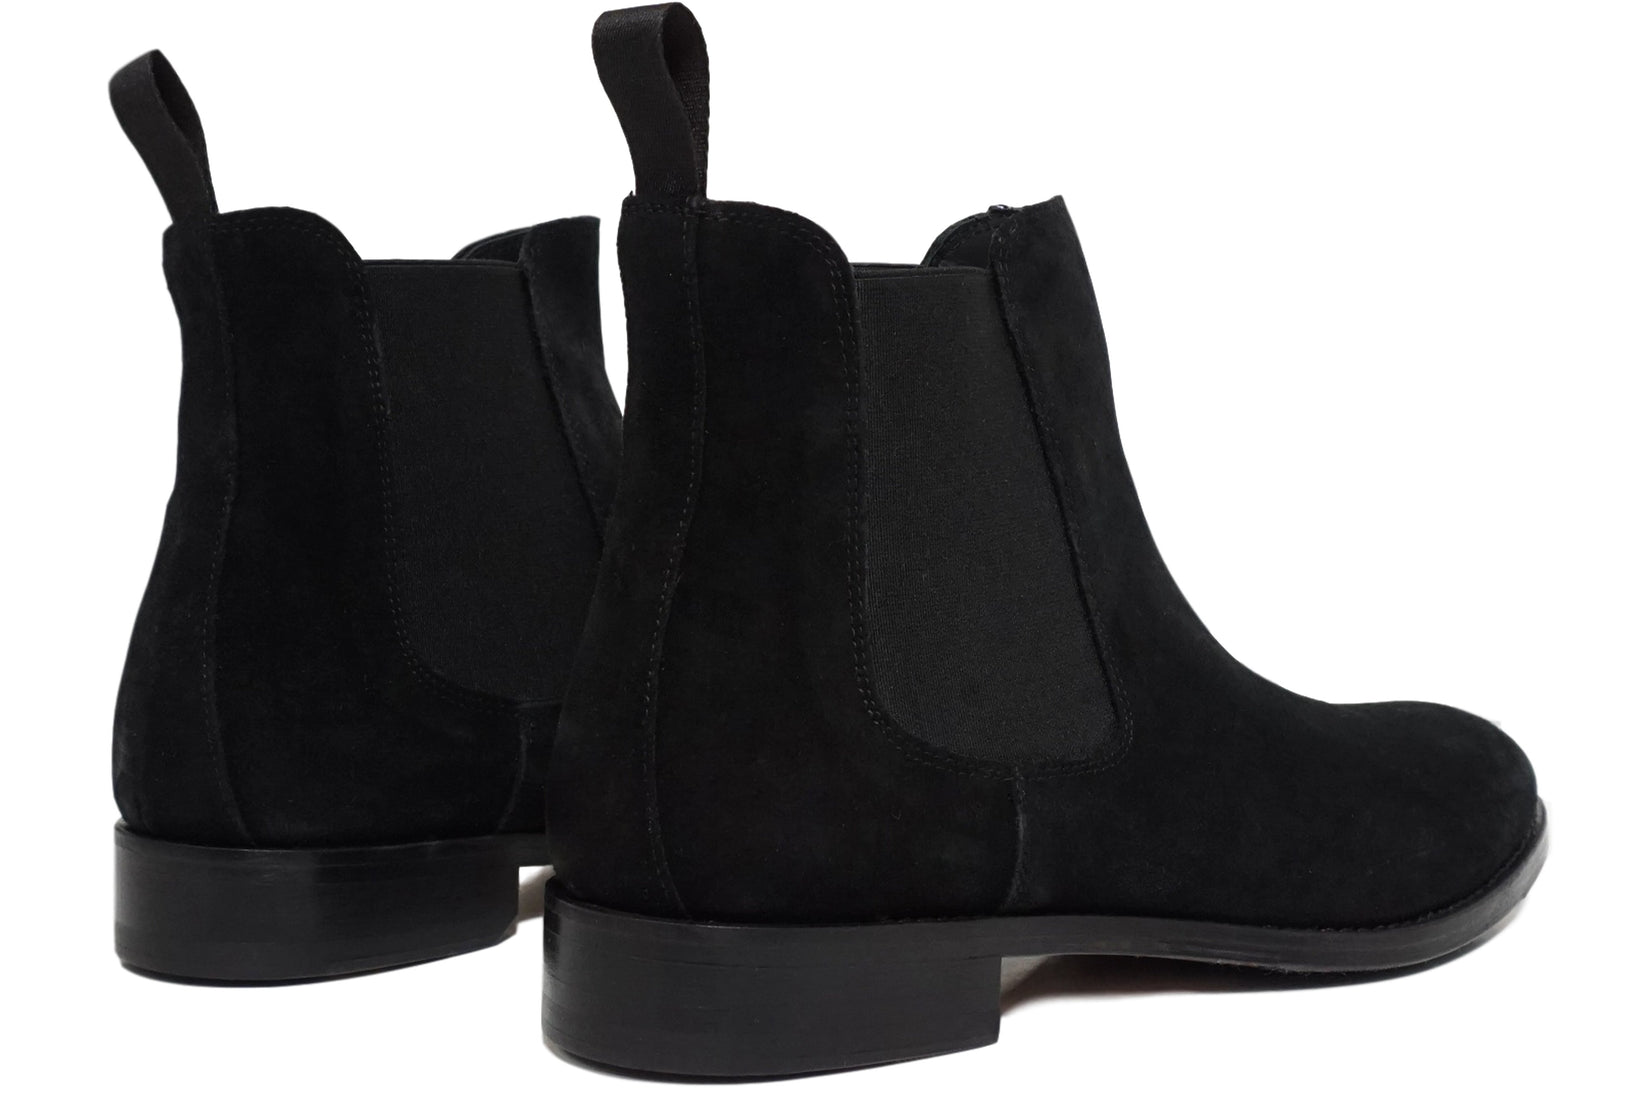 Wednesday Chelsea Boot in Black Suede